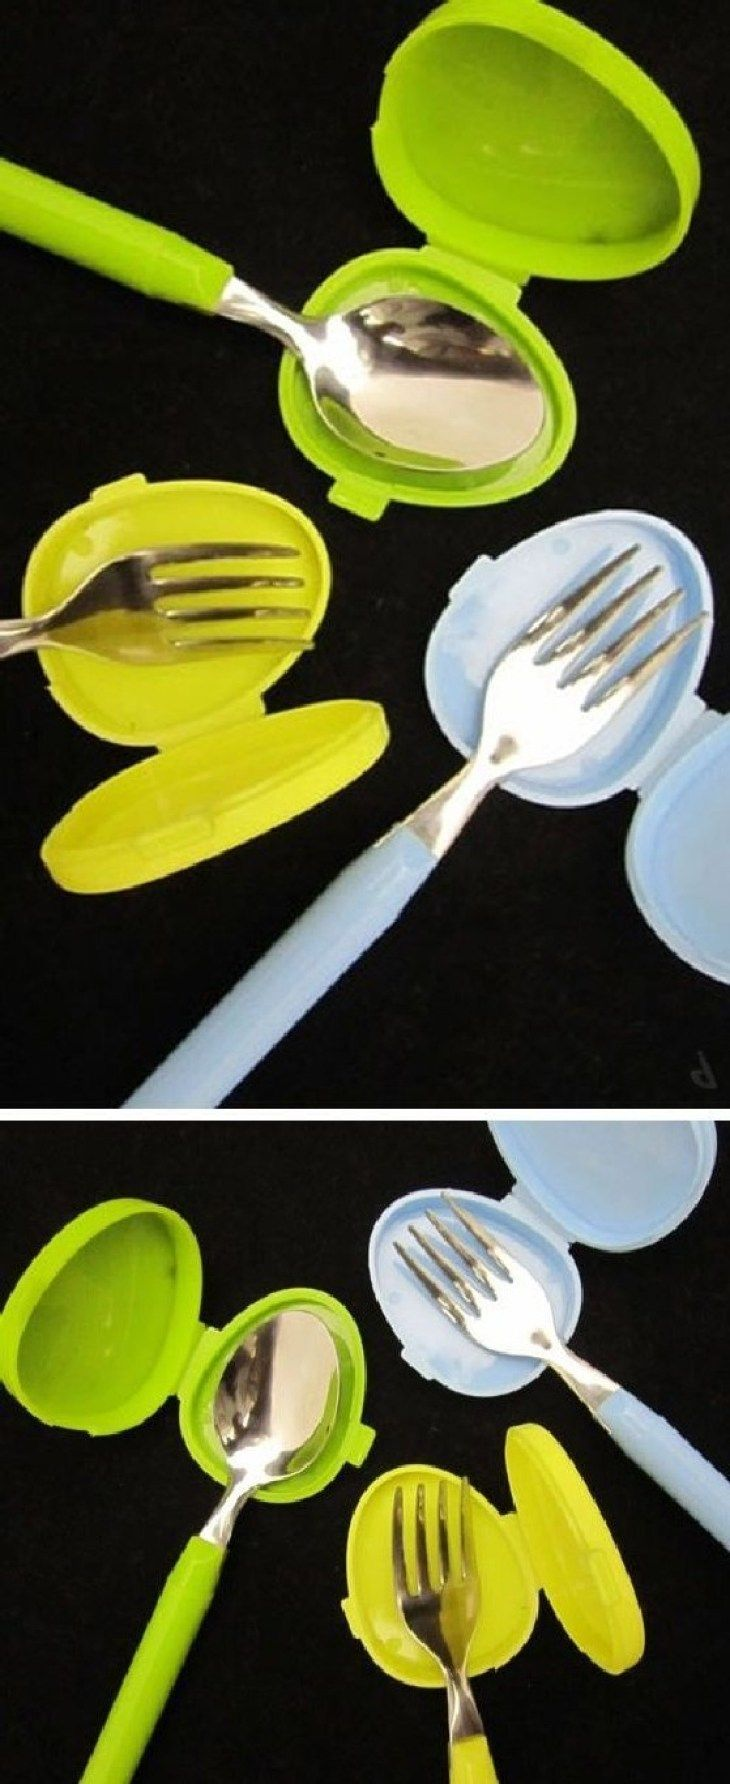 Best 12 Awesome Crazy Kitchen Gadgets for Food Lovers   Küchen ...